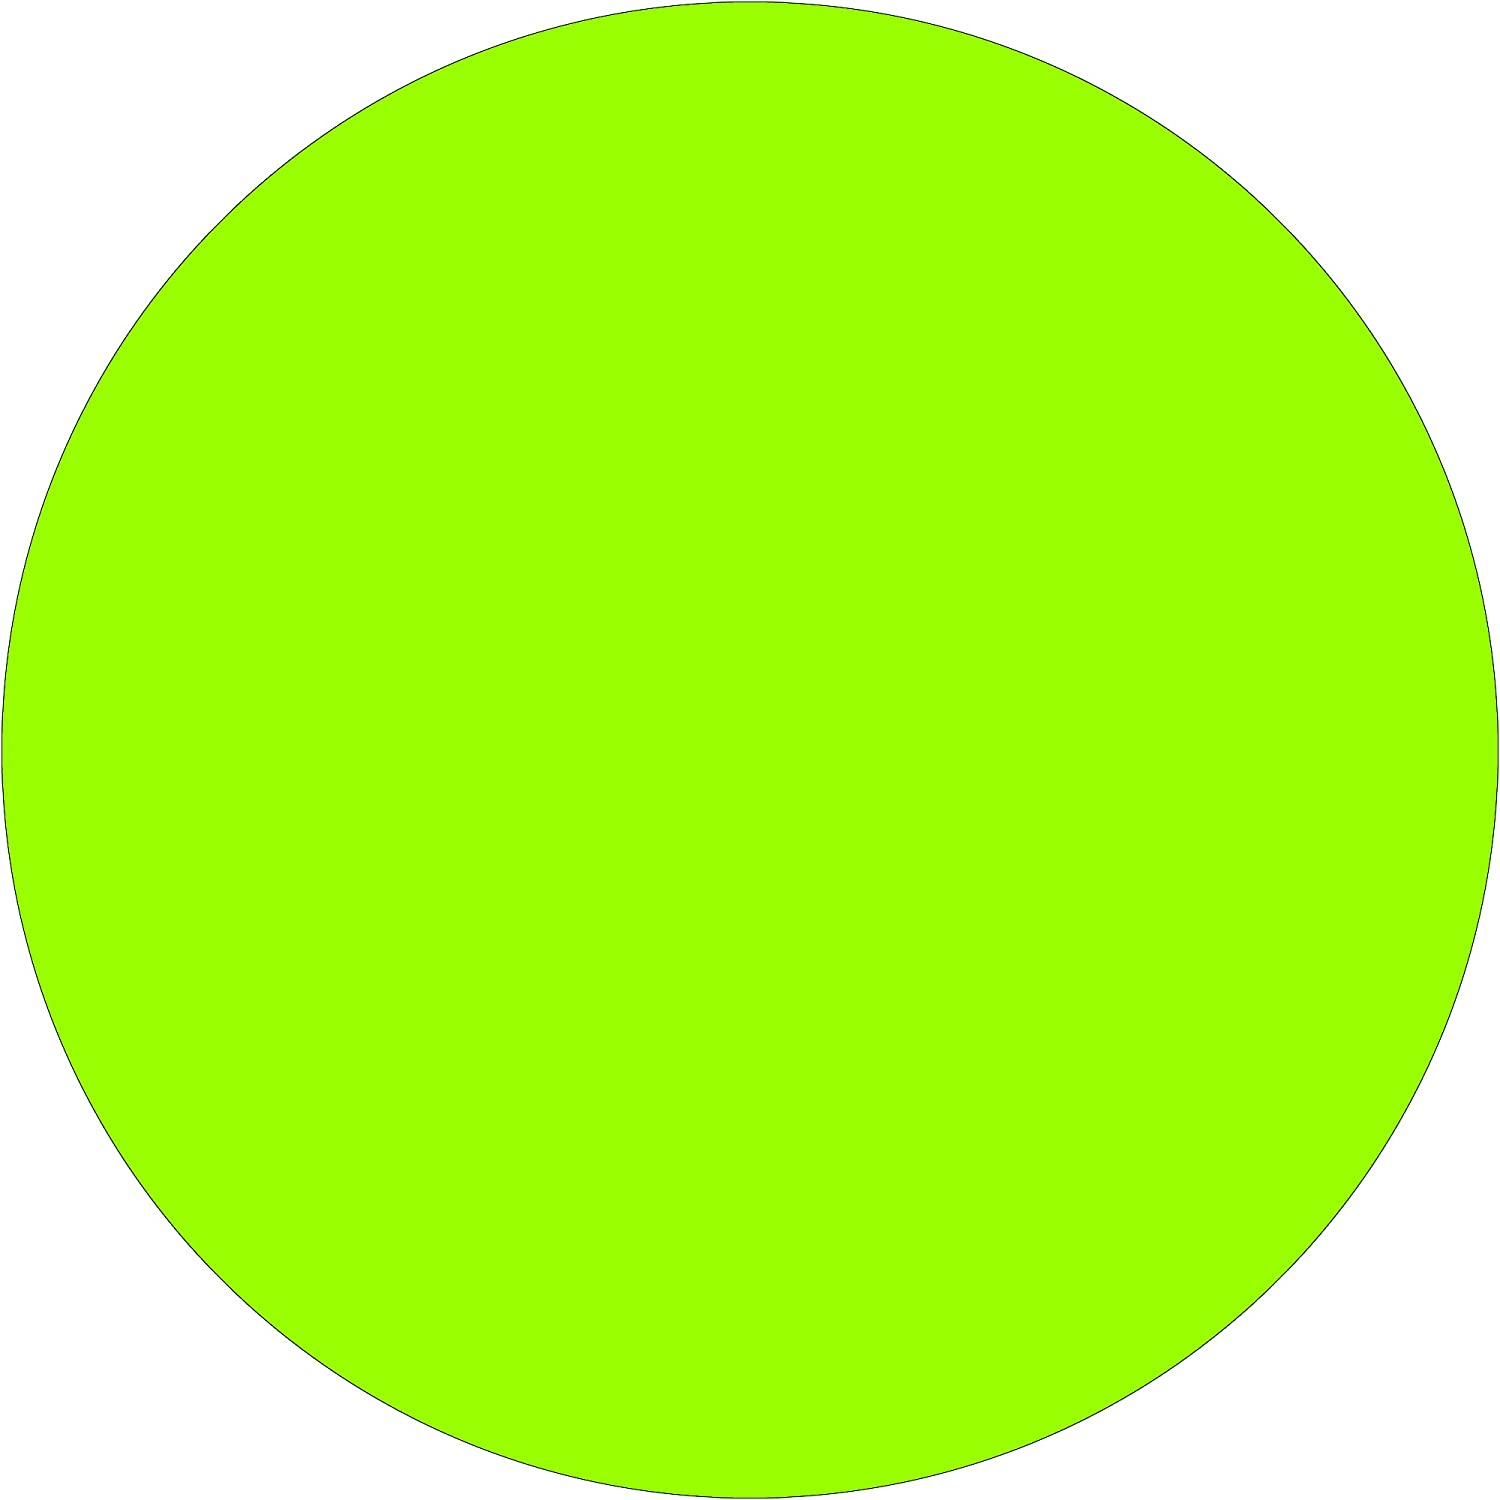 BOX USA BDL615J Tape Logic Inventory Circle Labels,4 Pack of 500 Fluorescent Green